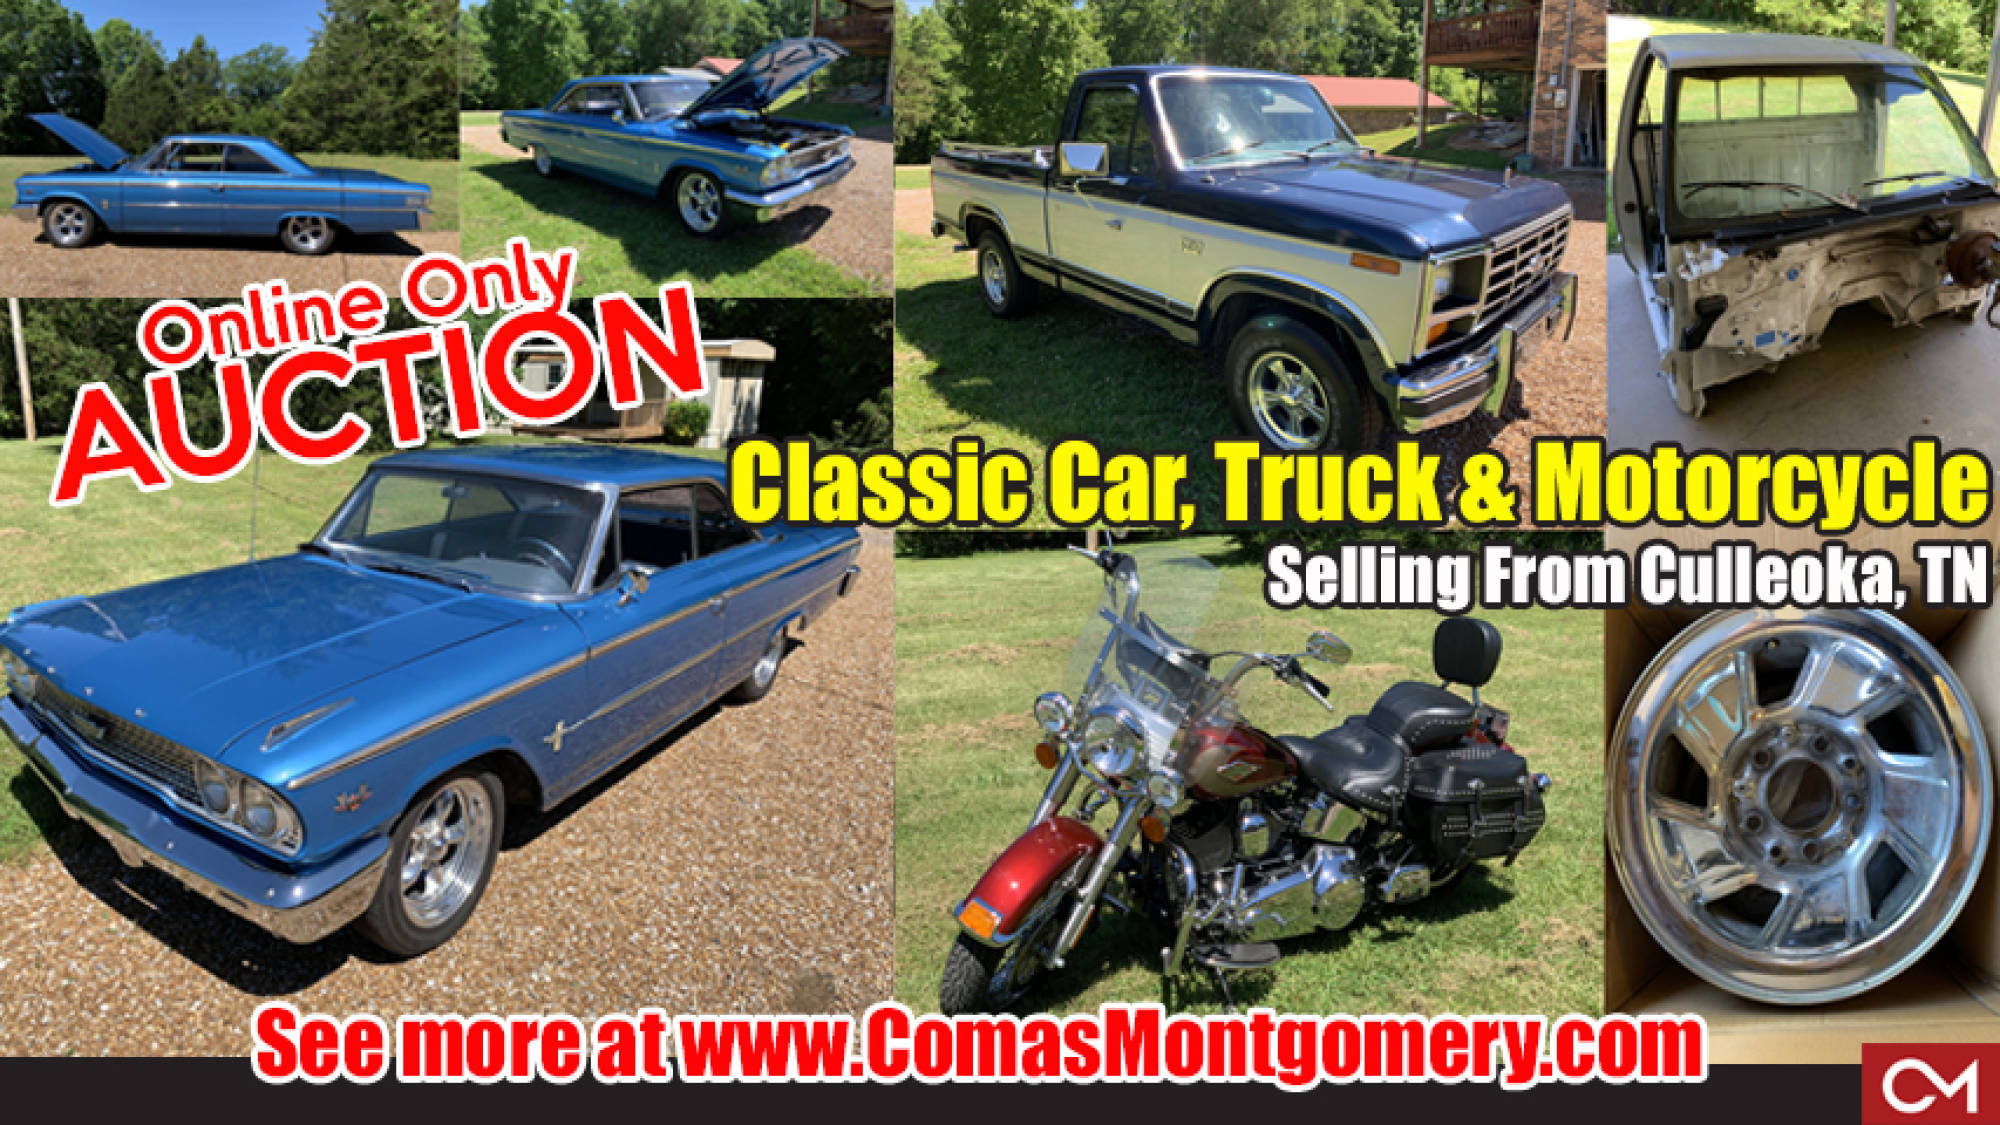 online, auction, classic, car, automobile, for sale, harley, davidson, ford, galaxie, truck, collectible, motorcycle, culleoka, tennessee, comas, montgomery